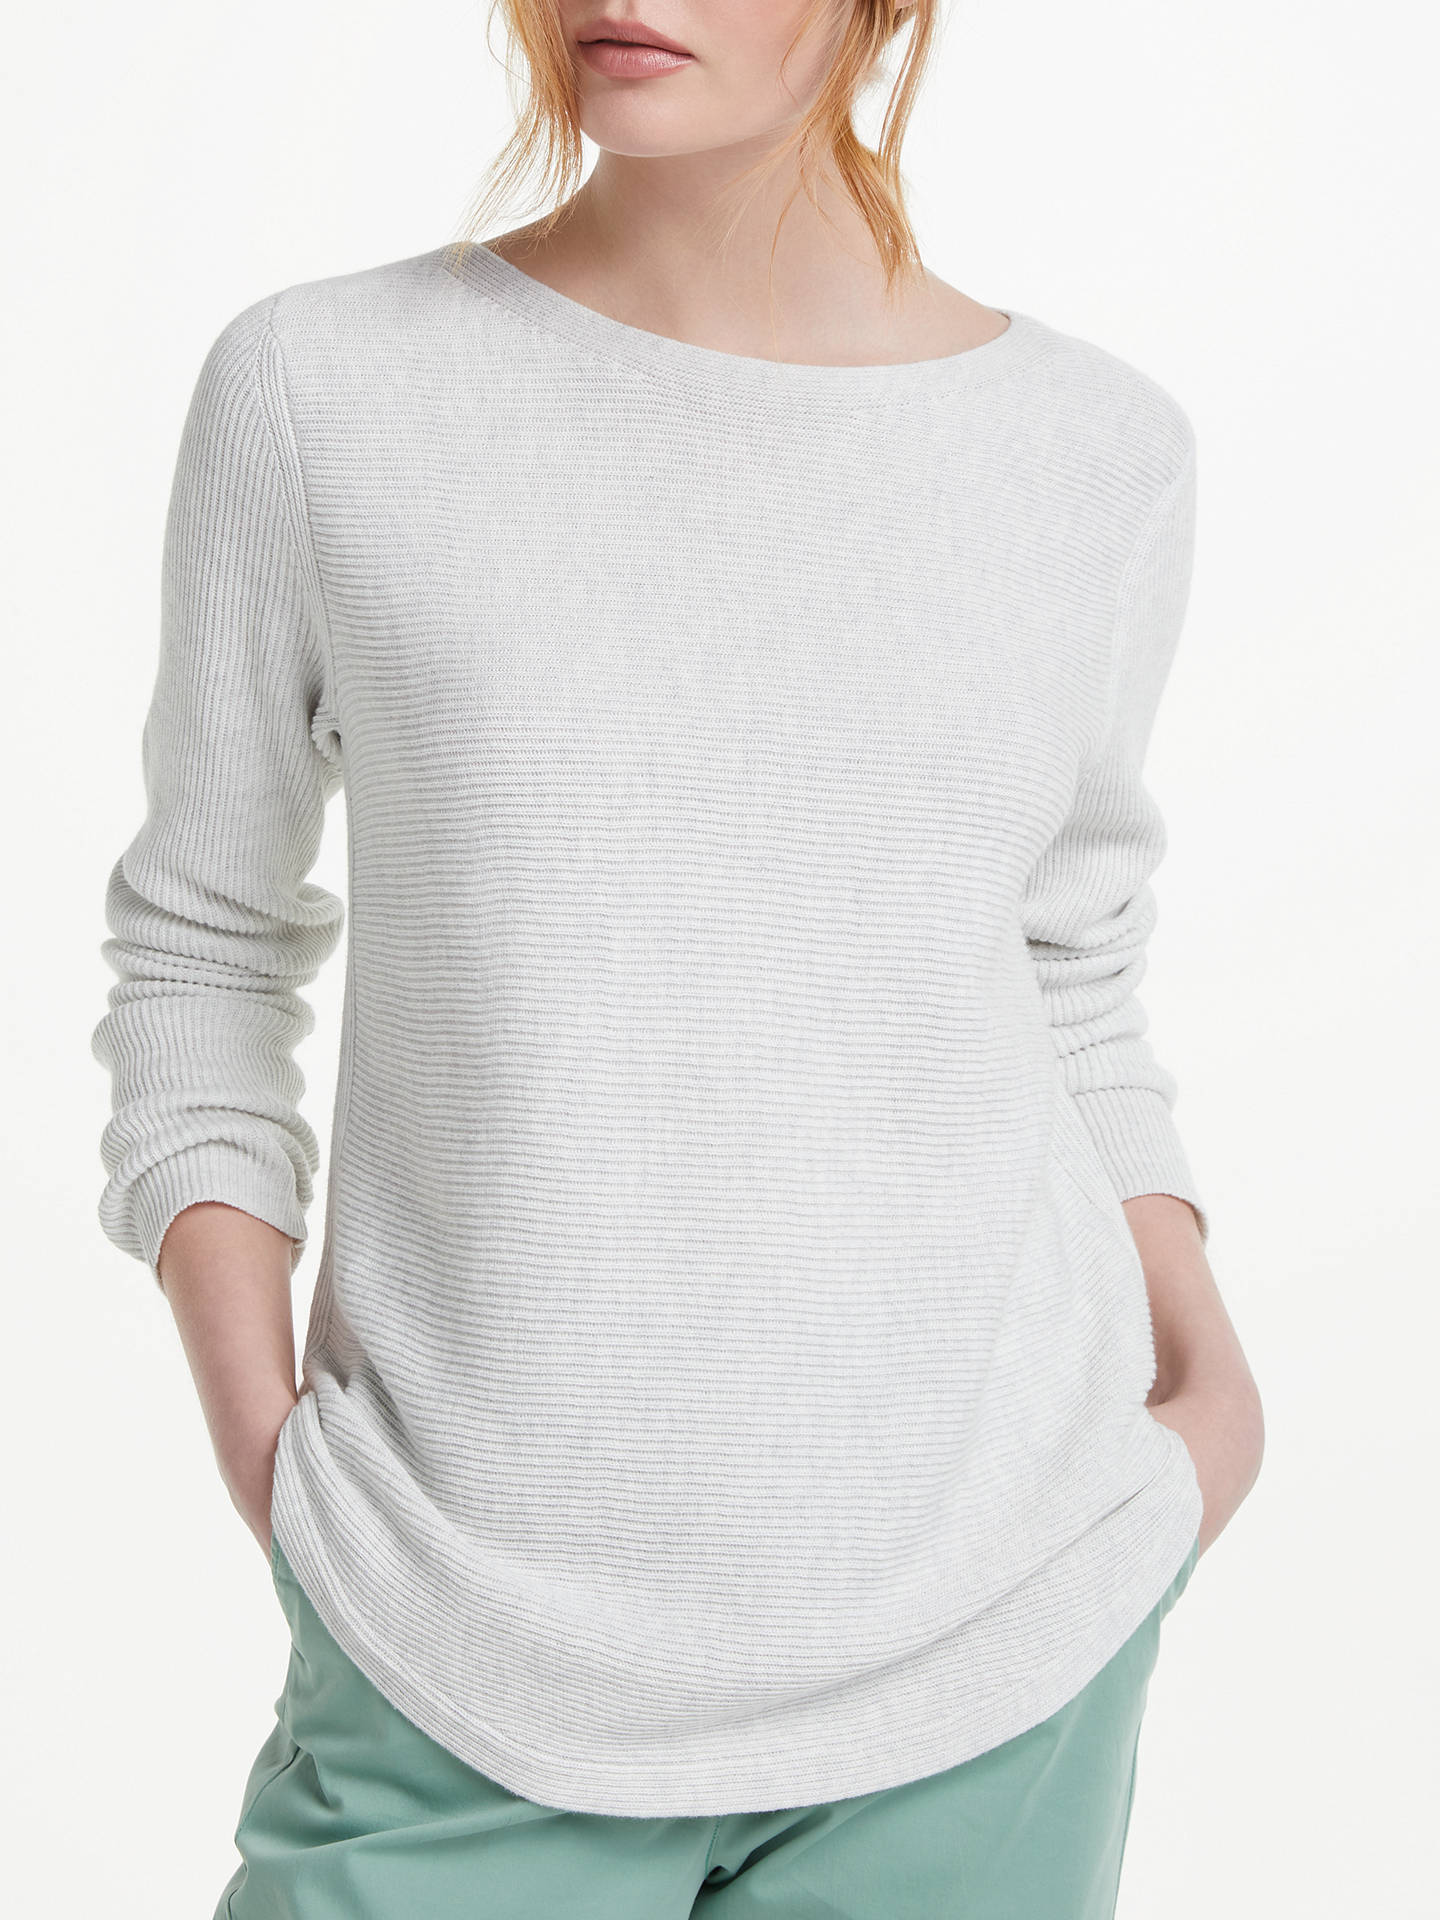 BuyJohn Lewis & Partners Rib Stitch Boat Neck Jumper, Grey Marl, 8 Online at johnlewis.com